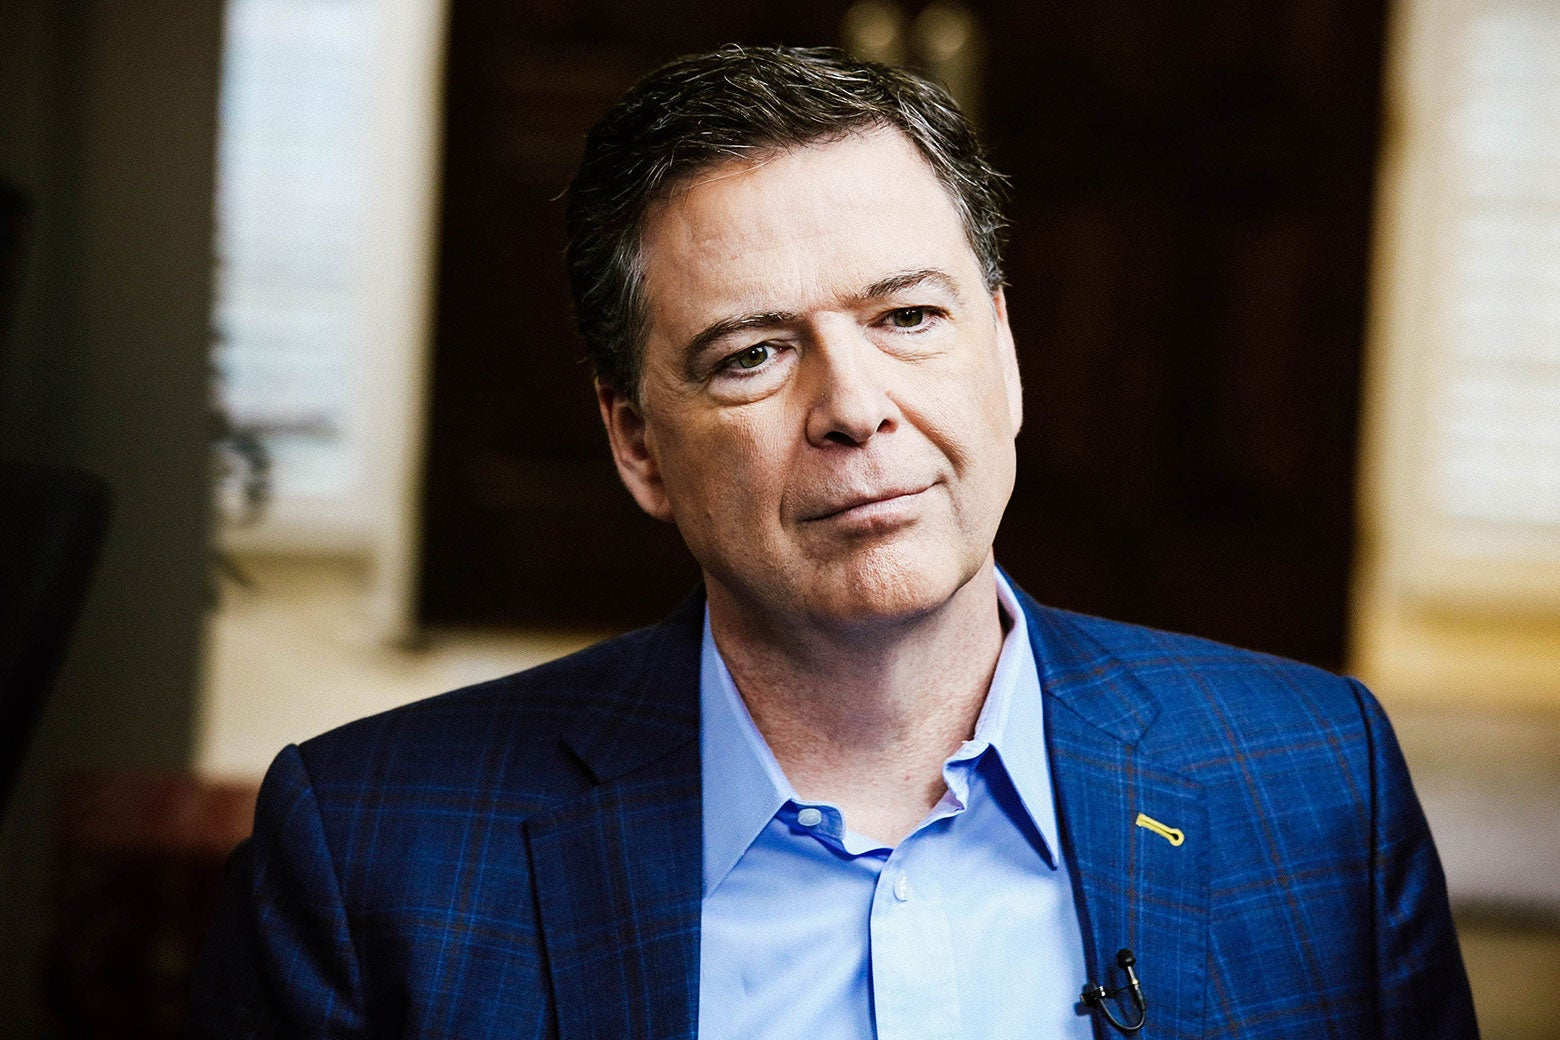 James Comey sits down for an exclusive interview in a Sunday prime-time 20/20 special on ABC.